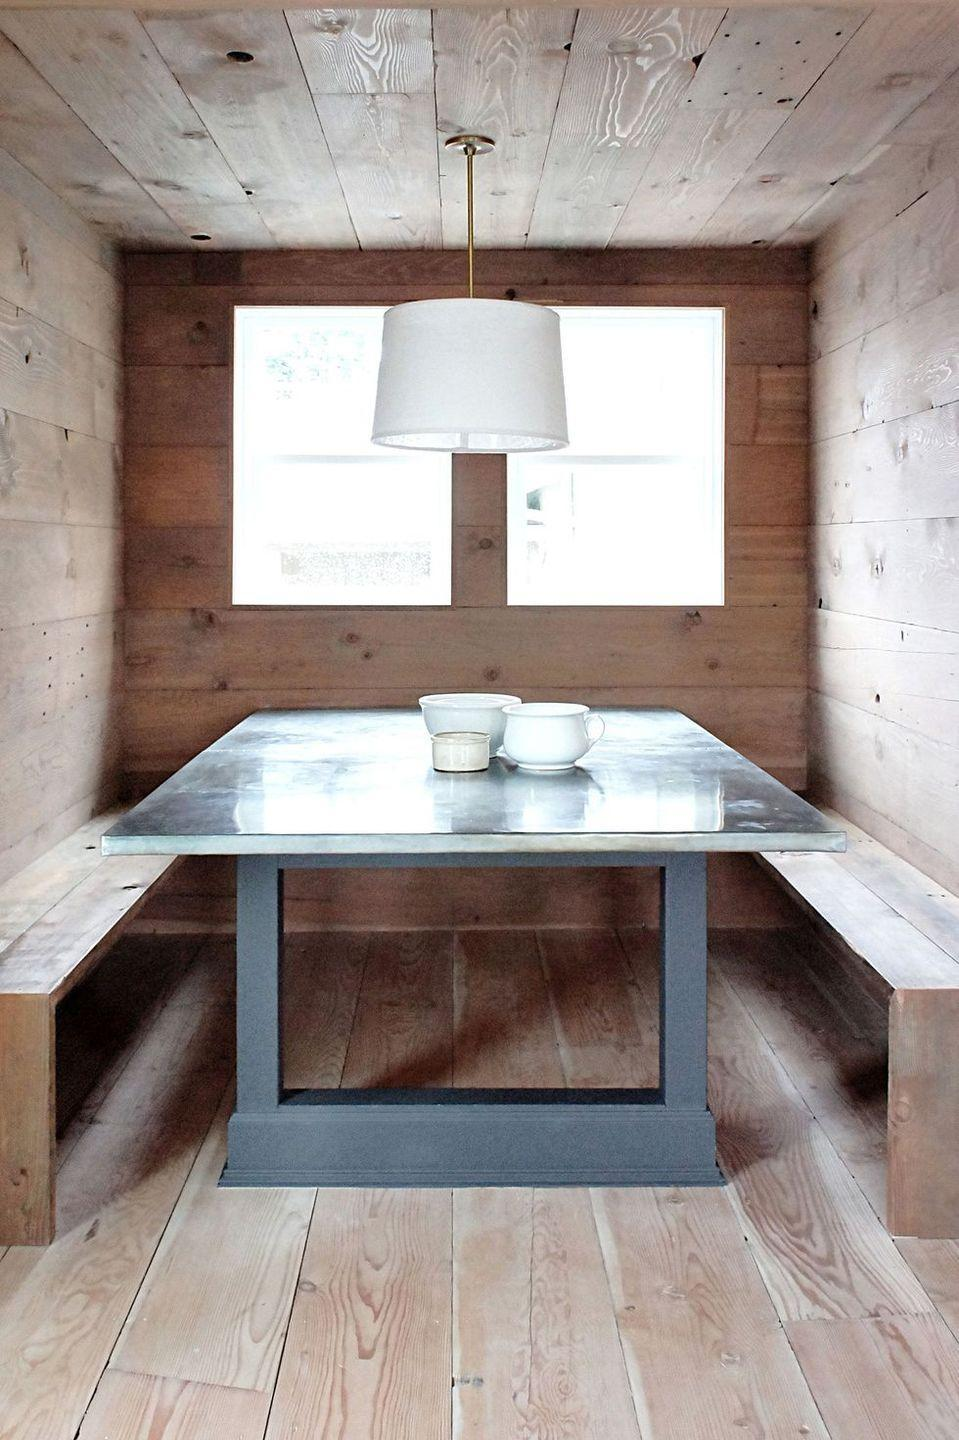 """<p>The only thing cozier than a breakfast nook is an enclosed breakfast nook. Designed by <a href=""""https://kaemingkdesign.com/"""" rel=""""nofollow noopener"""" target=""""_blank"""" data-ylk=""""slk:Kaemingk Design"""" class=""""link rapid-noclick-resp"""">Kaemingk Design</a>, this one is a masterclass in pared-down Scandinavian style. The warm wood materials and enclosed setting make it feel inviting and intimate and you can always swap out different cushions as the seasons change. </p>"""